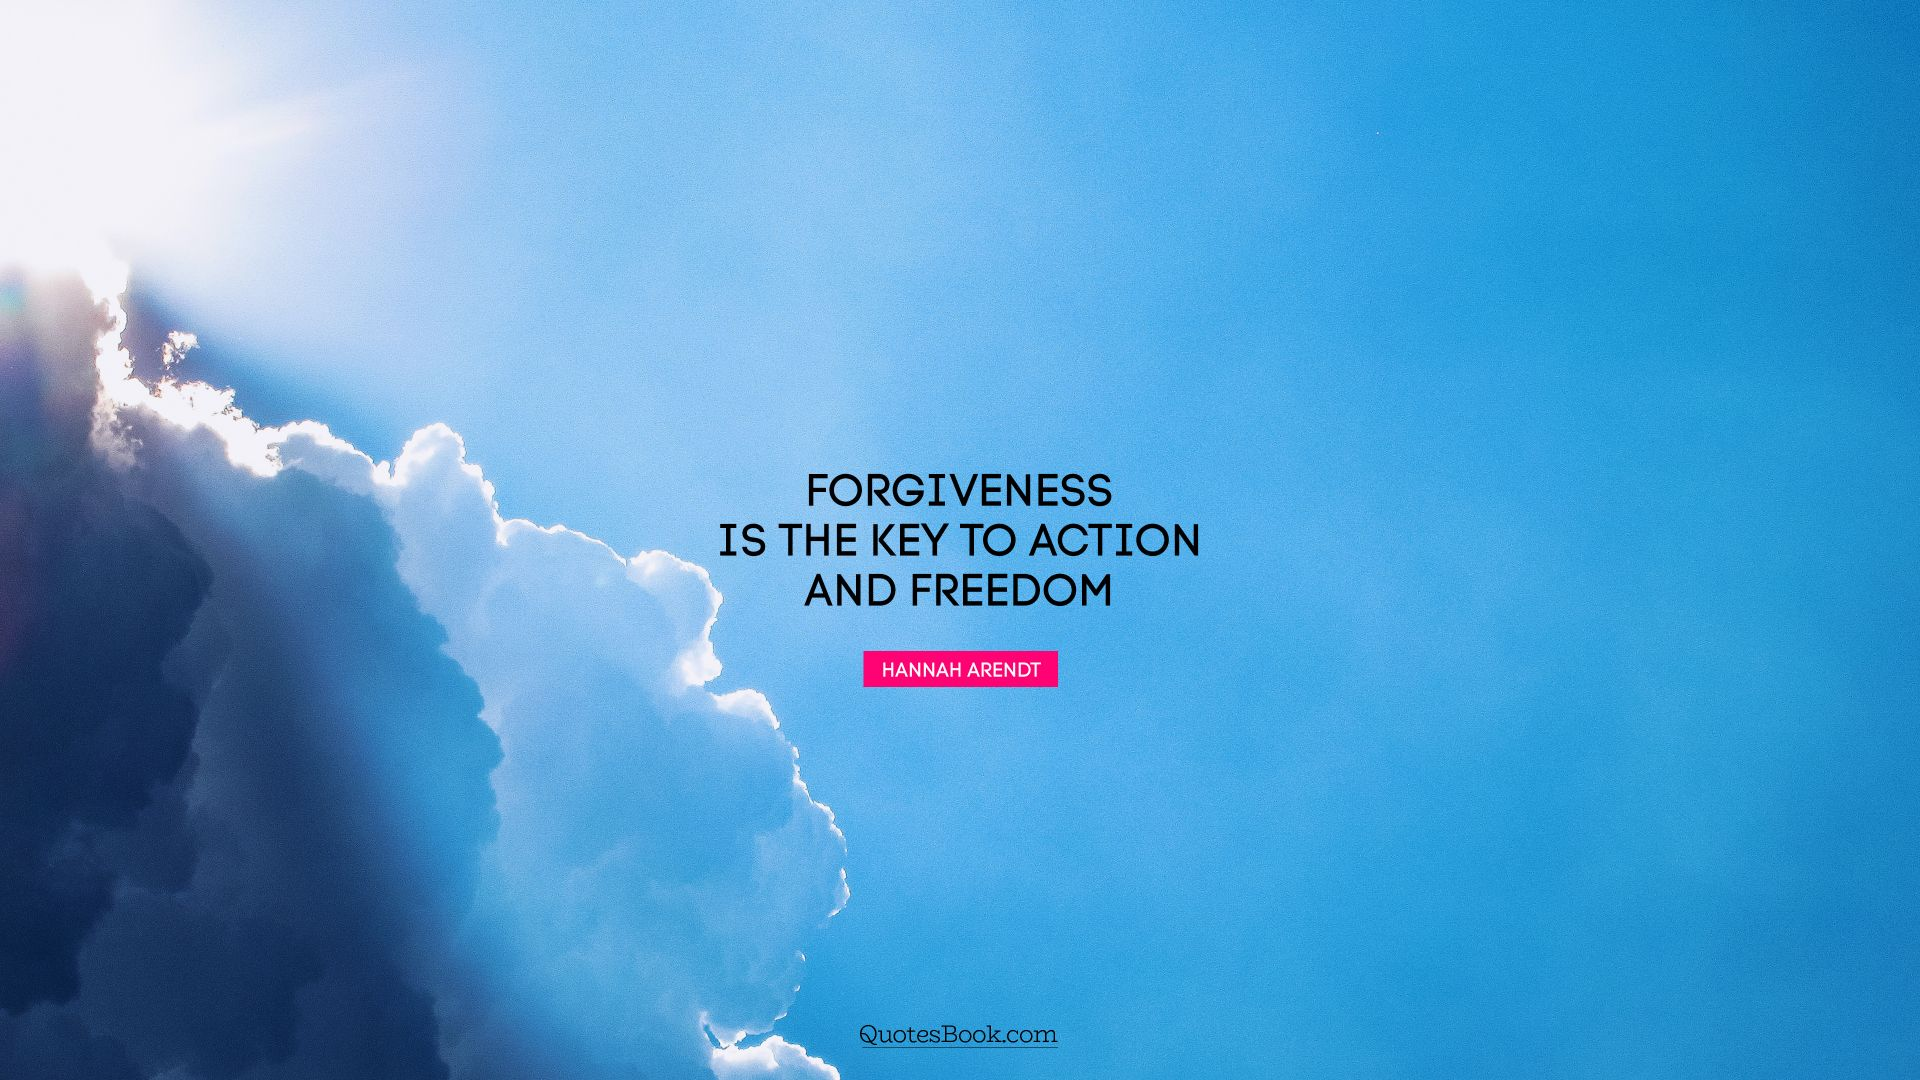 Forgiveness is the key to action and freedom. - Quote by Hannah Arendt